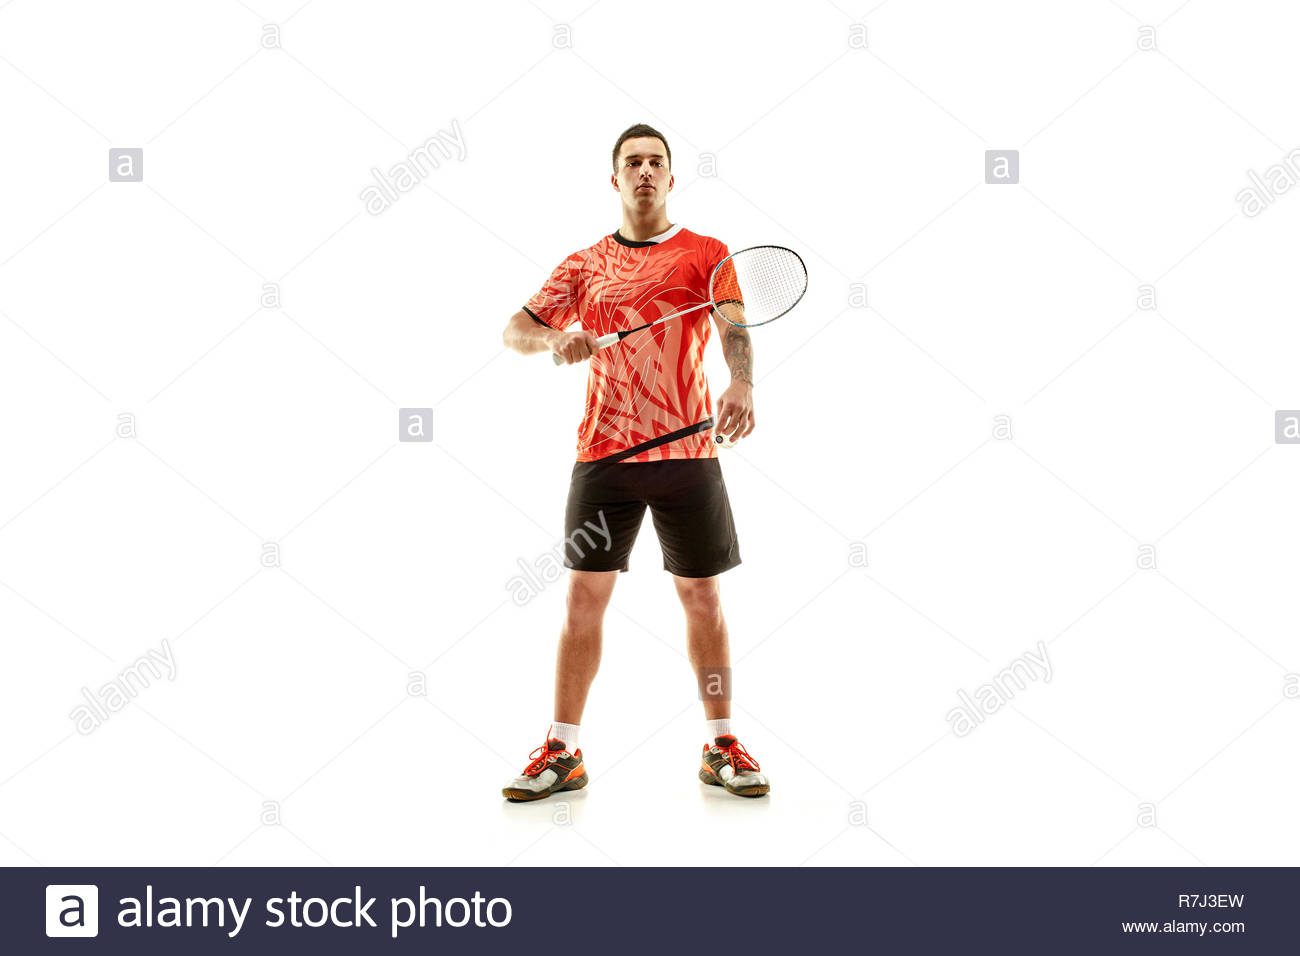 Badminton Player Cut Out Stock Images Pictures   Alamy 1300x956